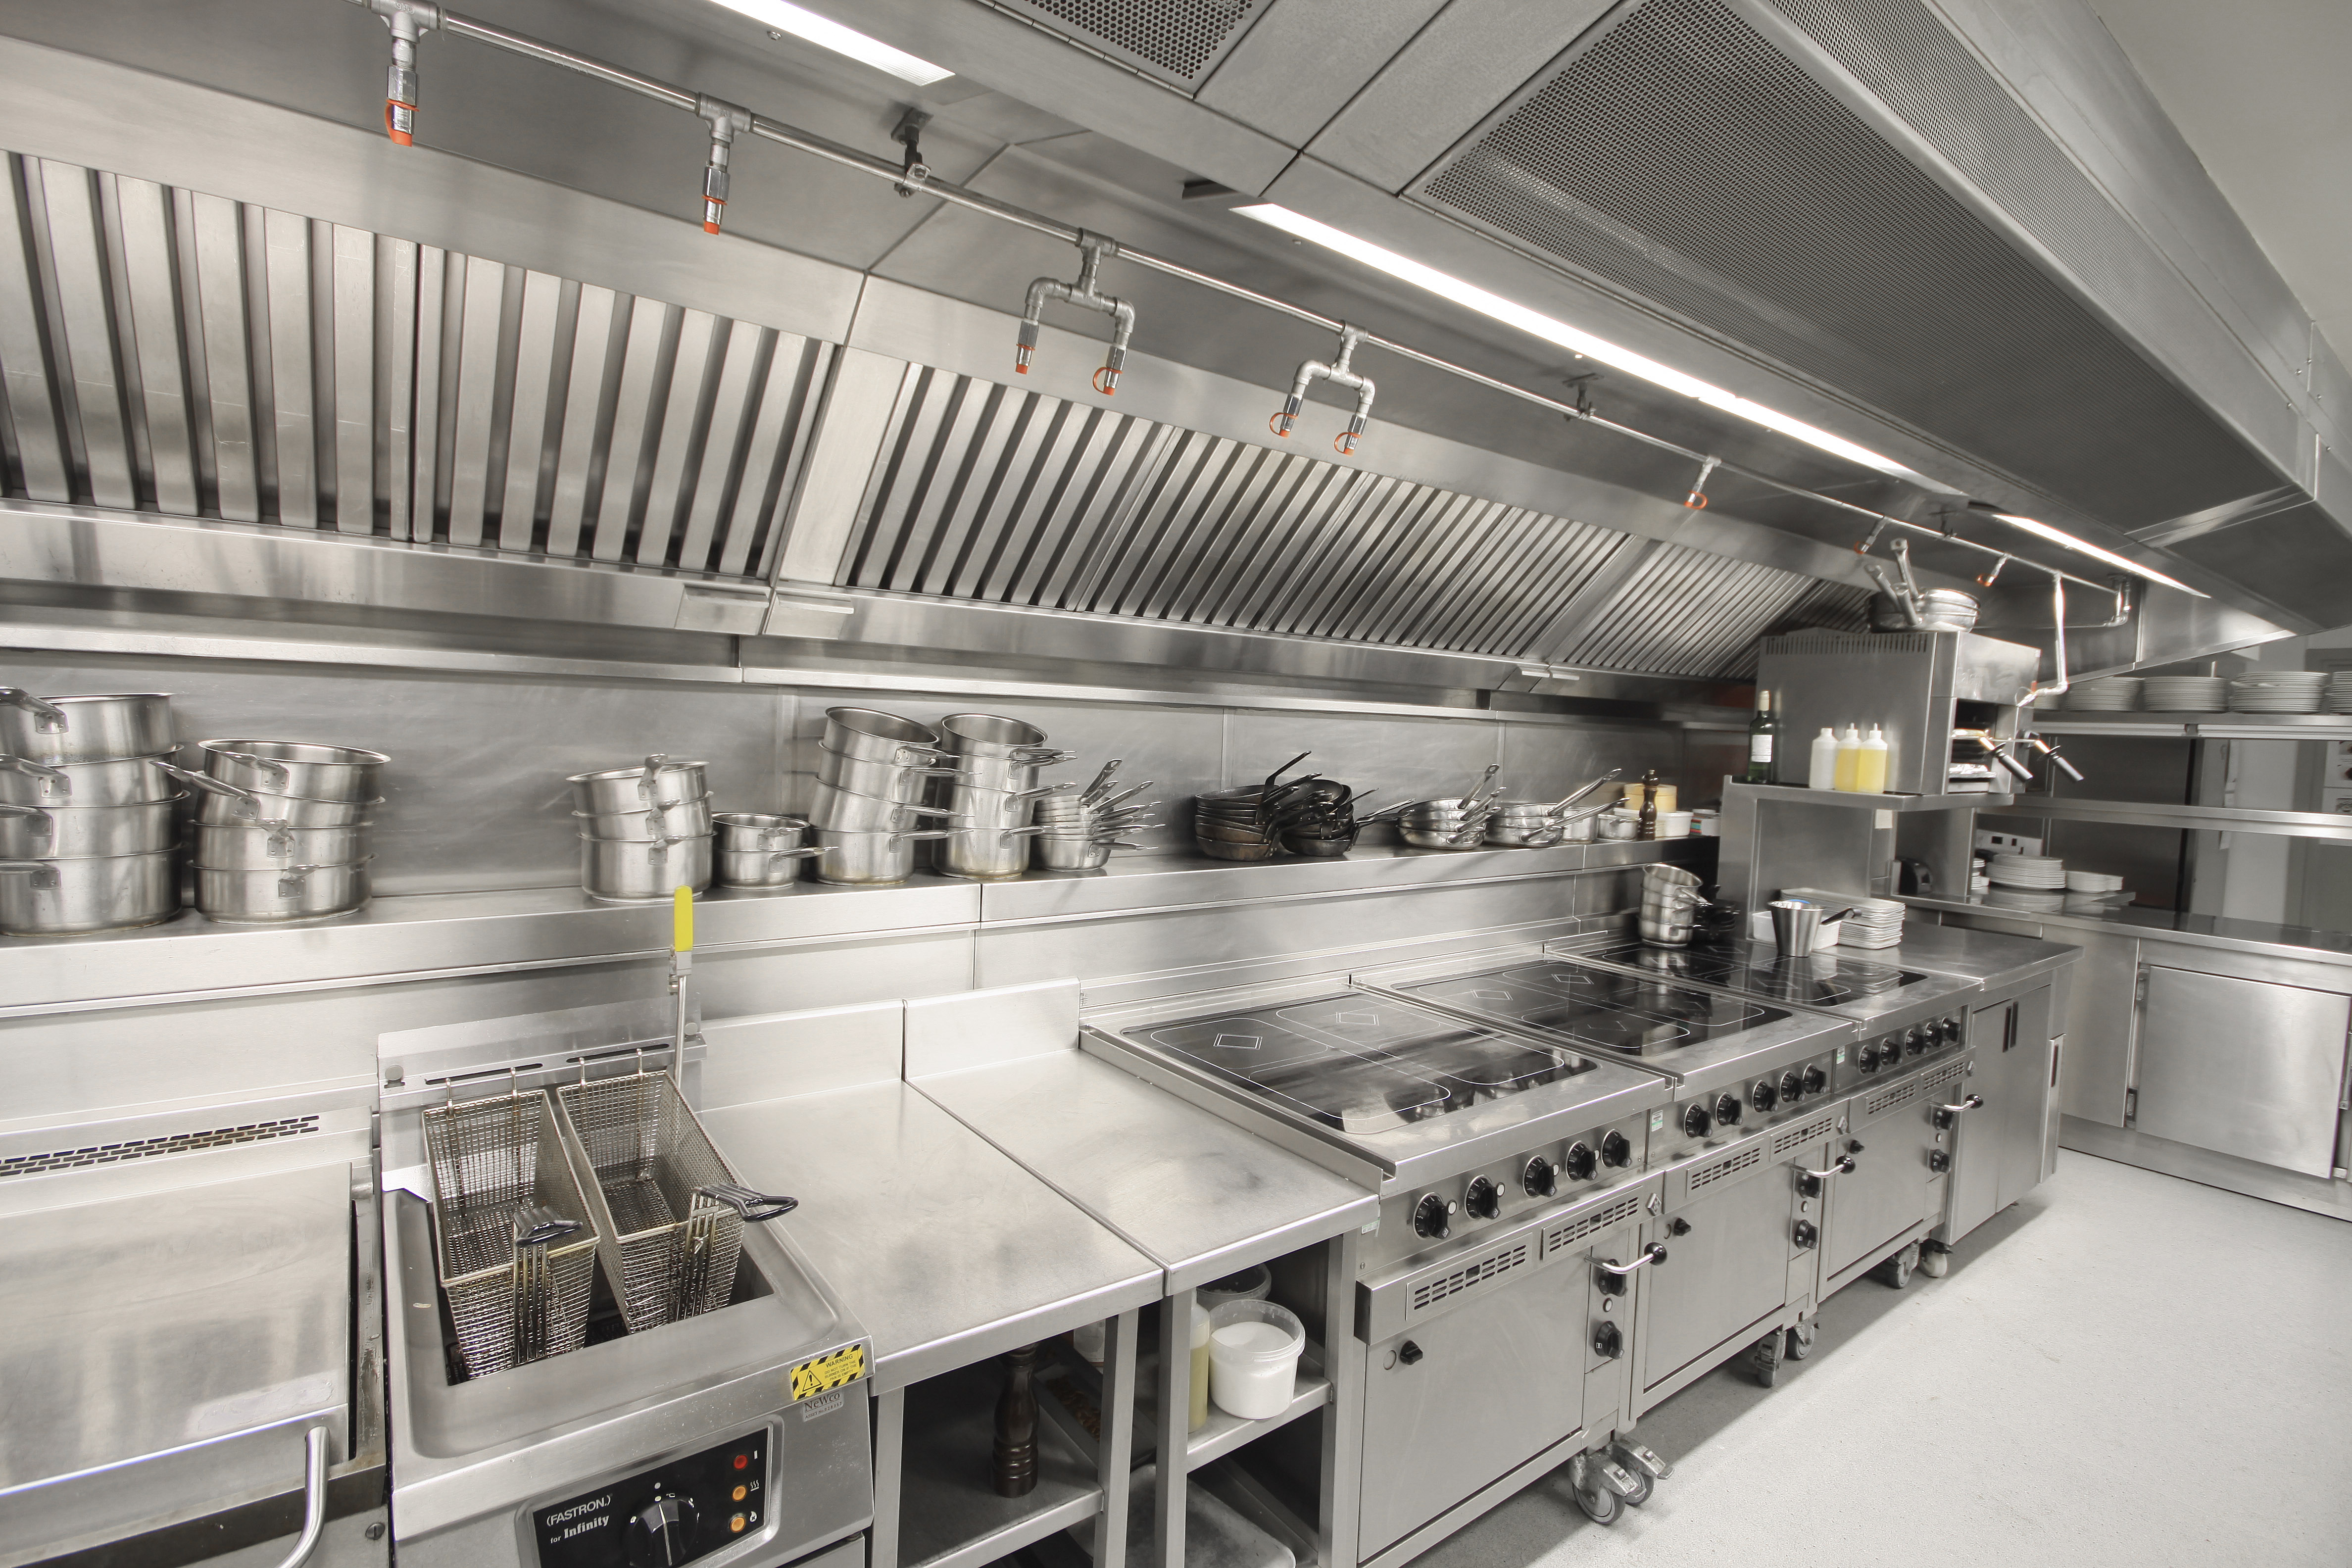 dangers of carbon monoide poisoning within a commercial kitchen commercial kitchen design RSC 51